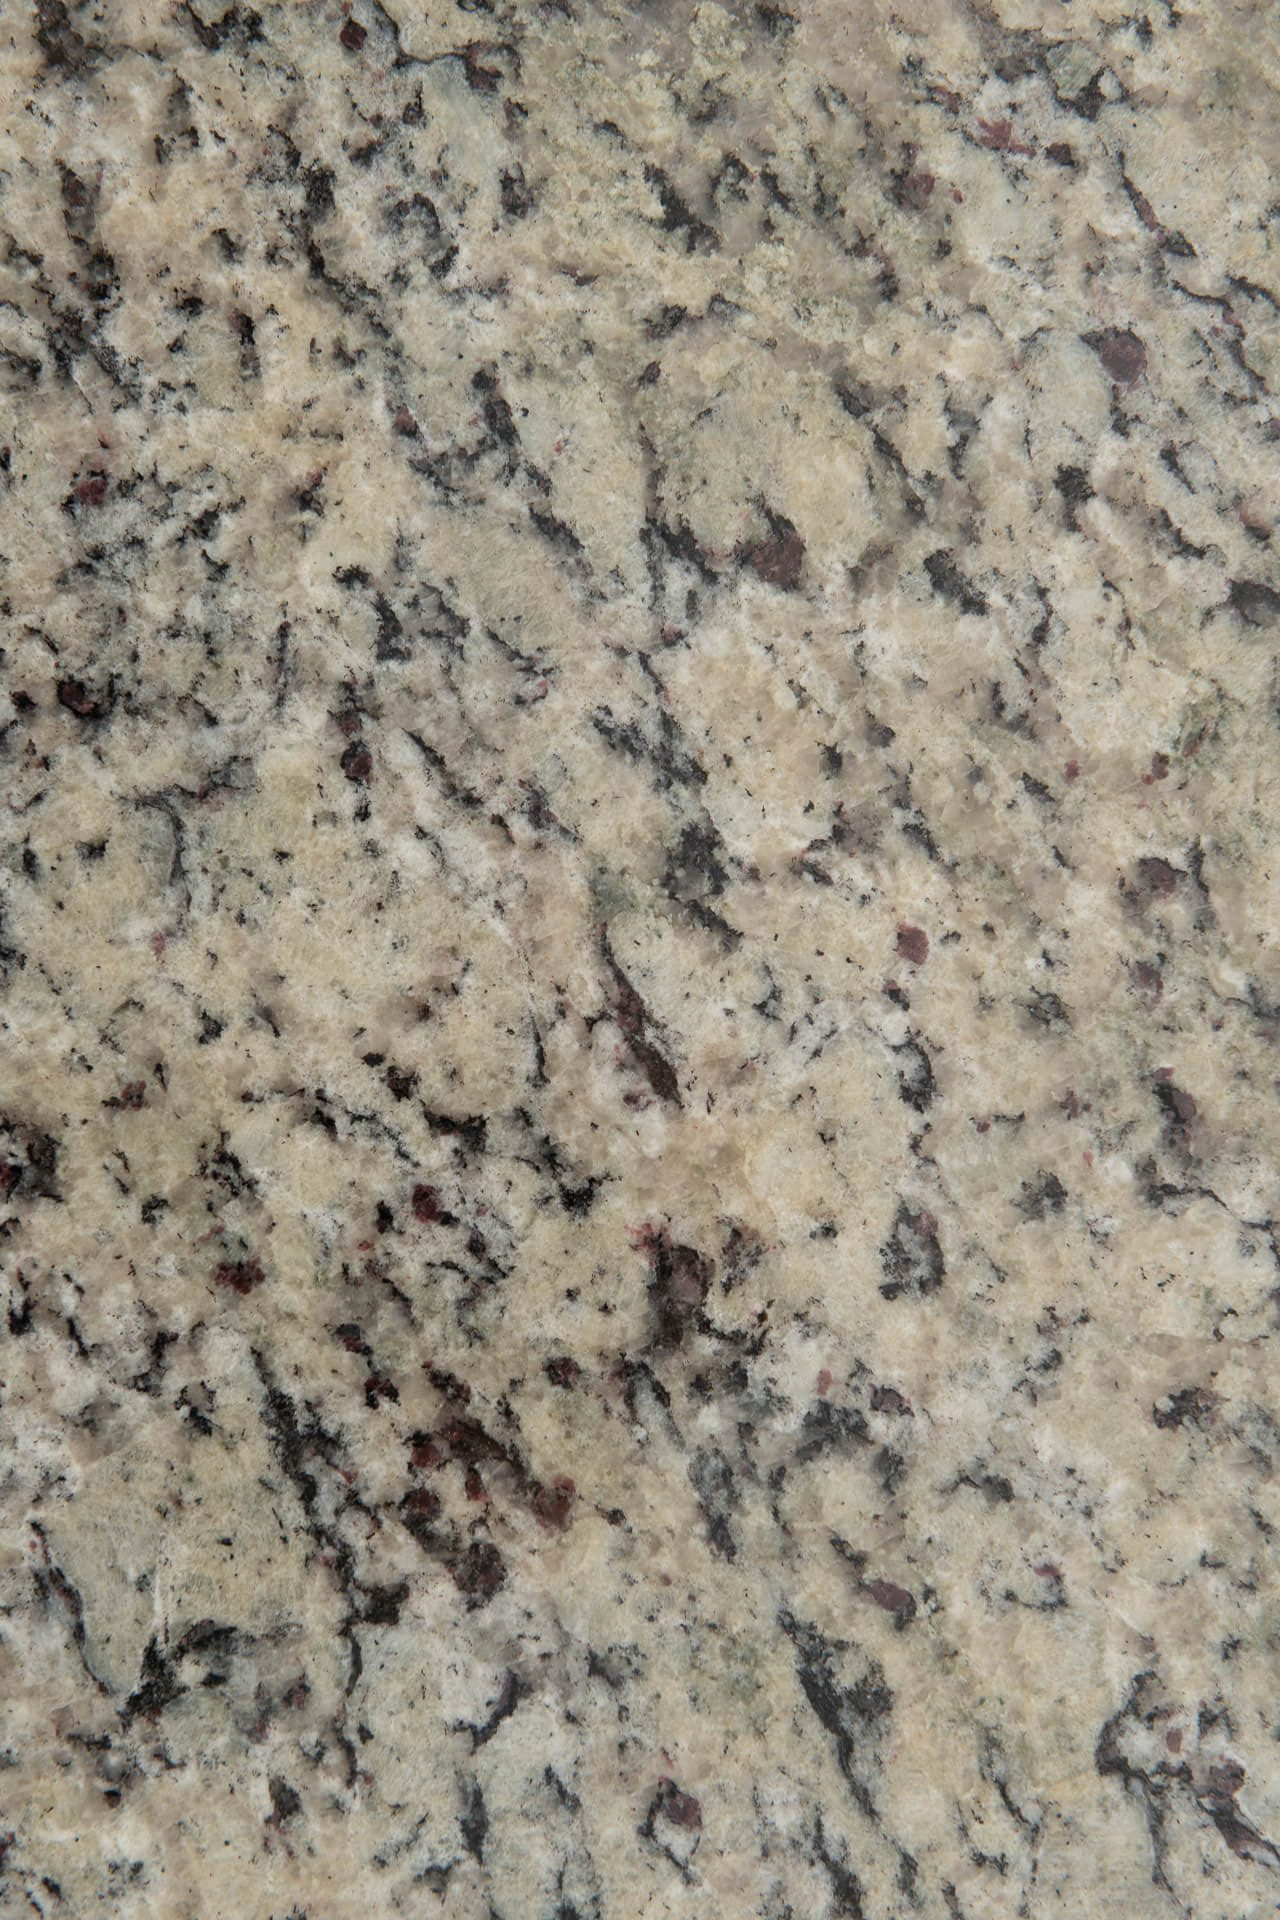 venetian white cu countertop - by Magnolia Countertops. A Countertop fabricator of Granite Countertops, Marble Countertops, and Quartz Countertops in Cookeville and Crossville TN.